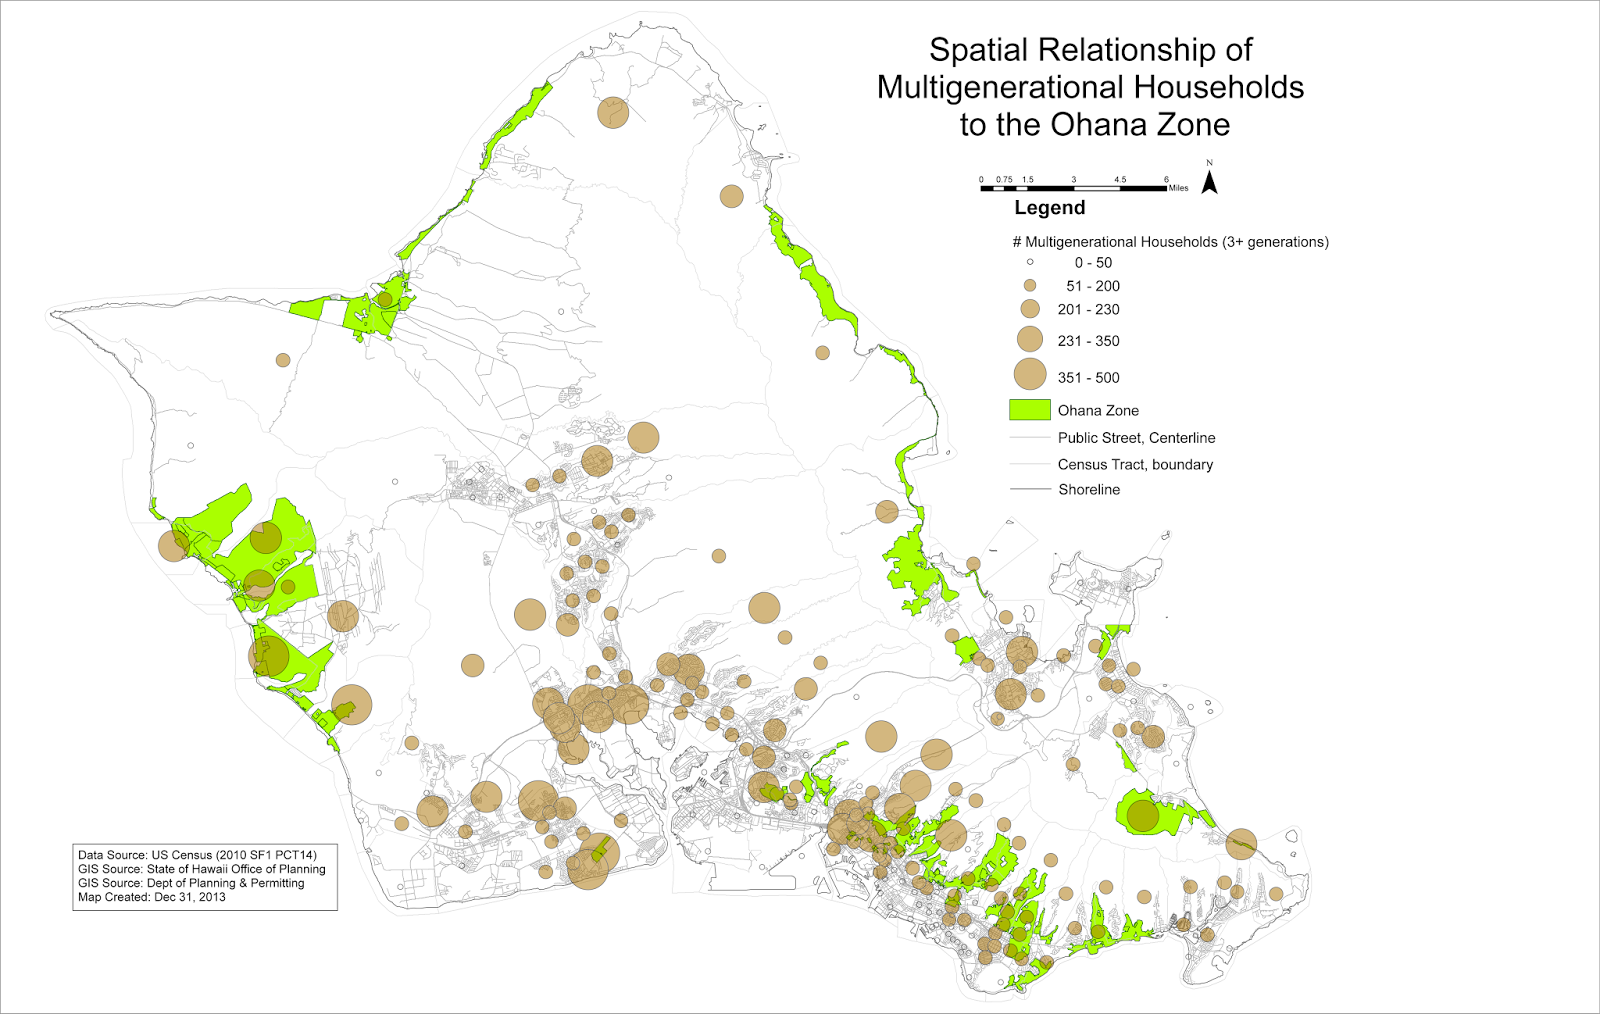 i wanted to do an overlay of multigen hh with the hotspot analysis of illegal accessory dwellings but that analysis was based on census block grp